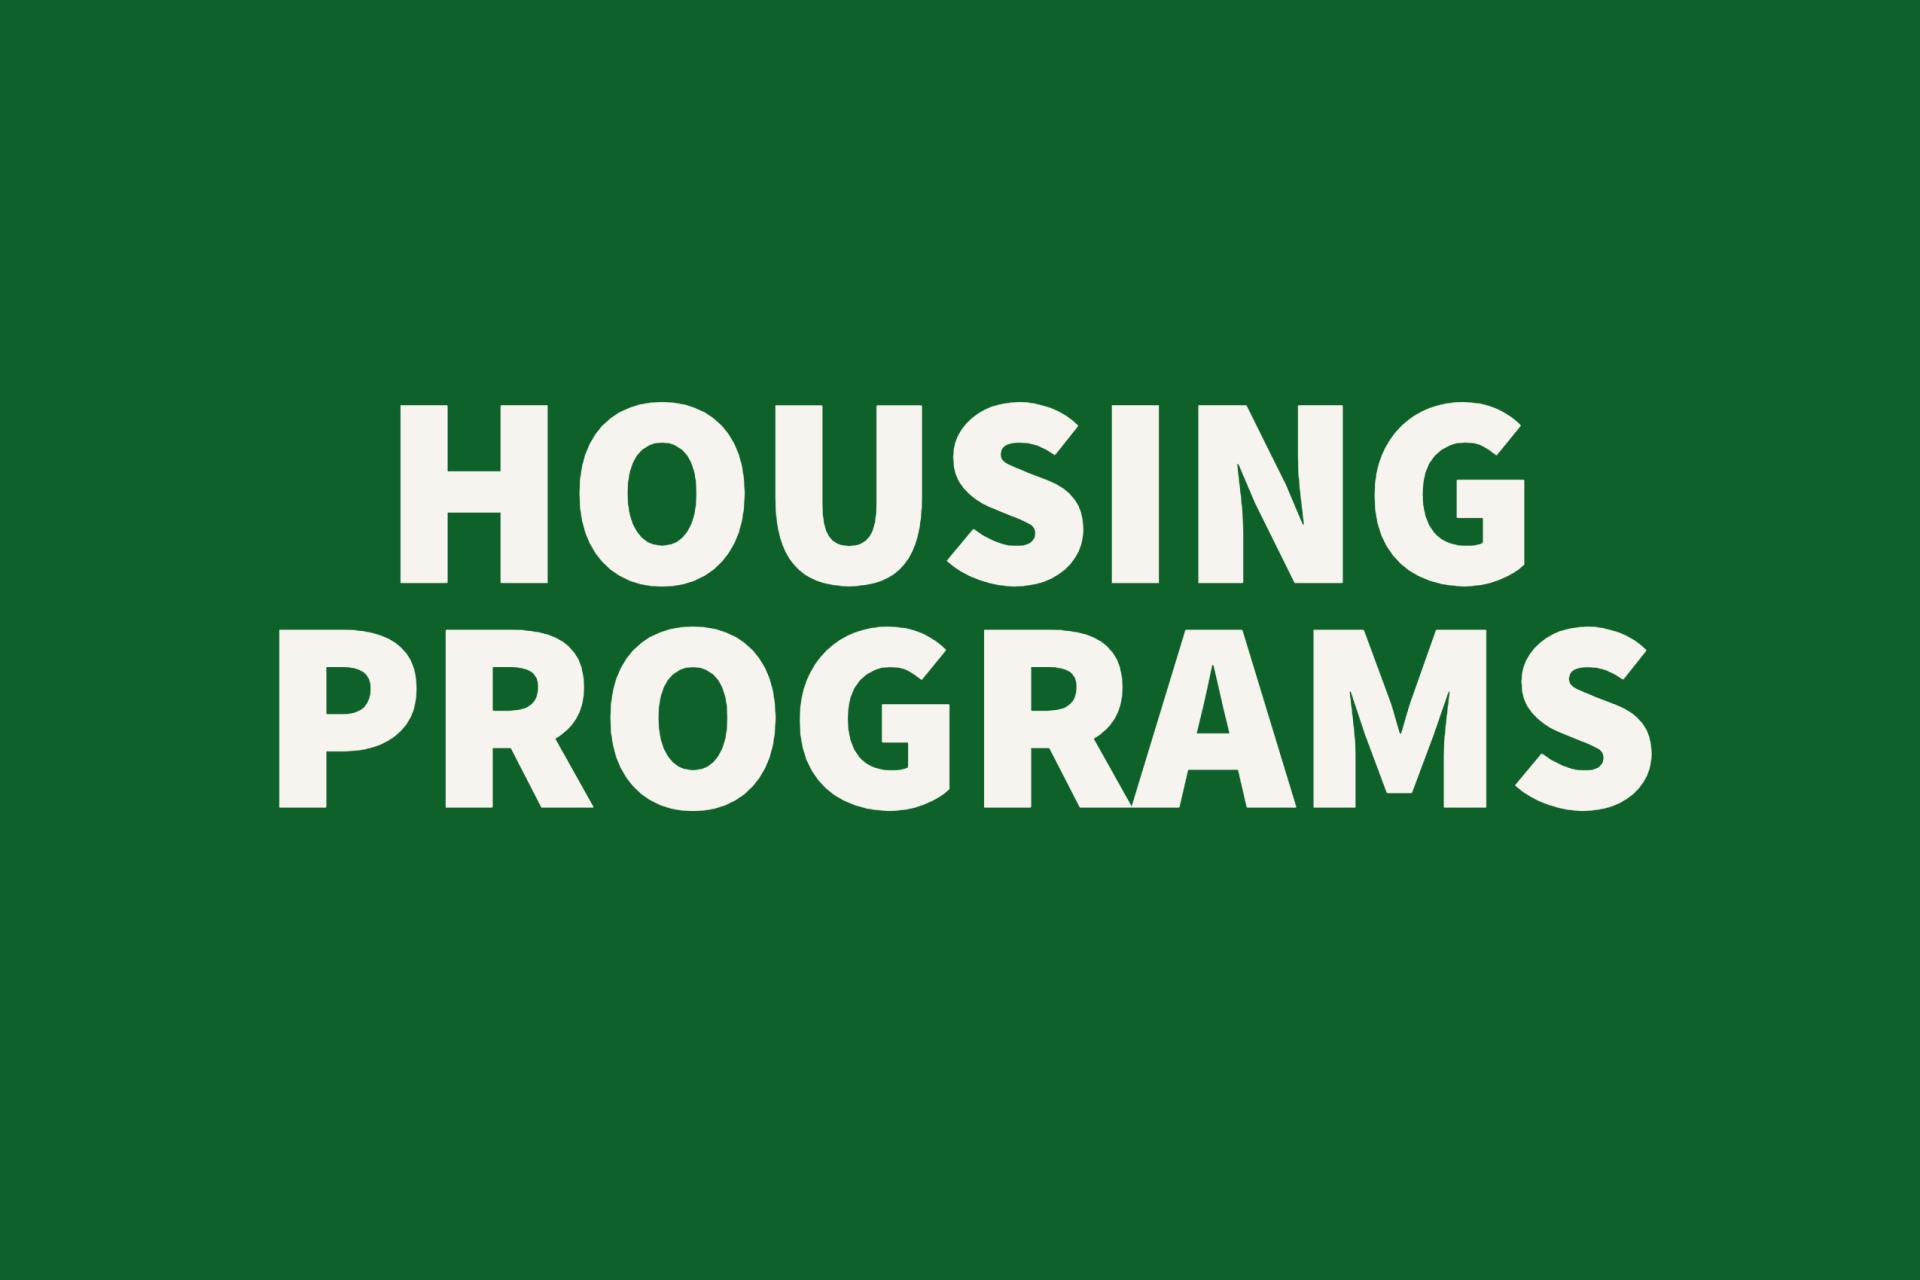 Housing Programs Button